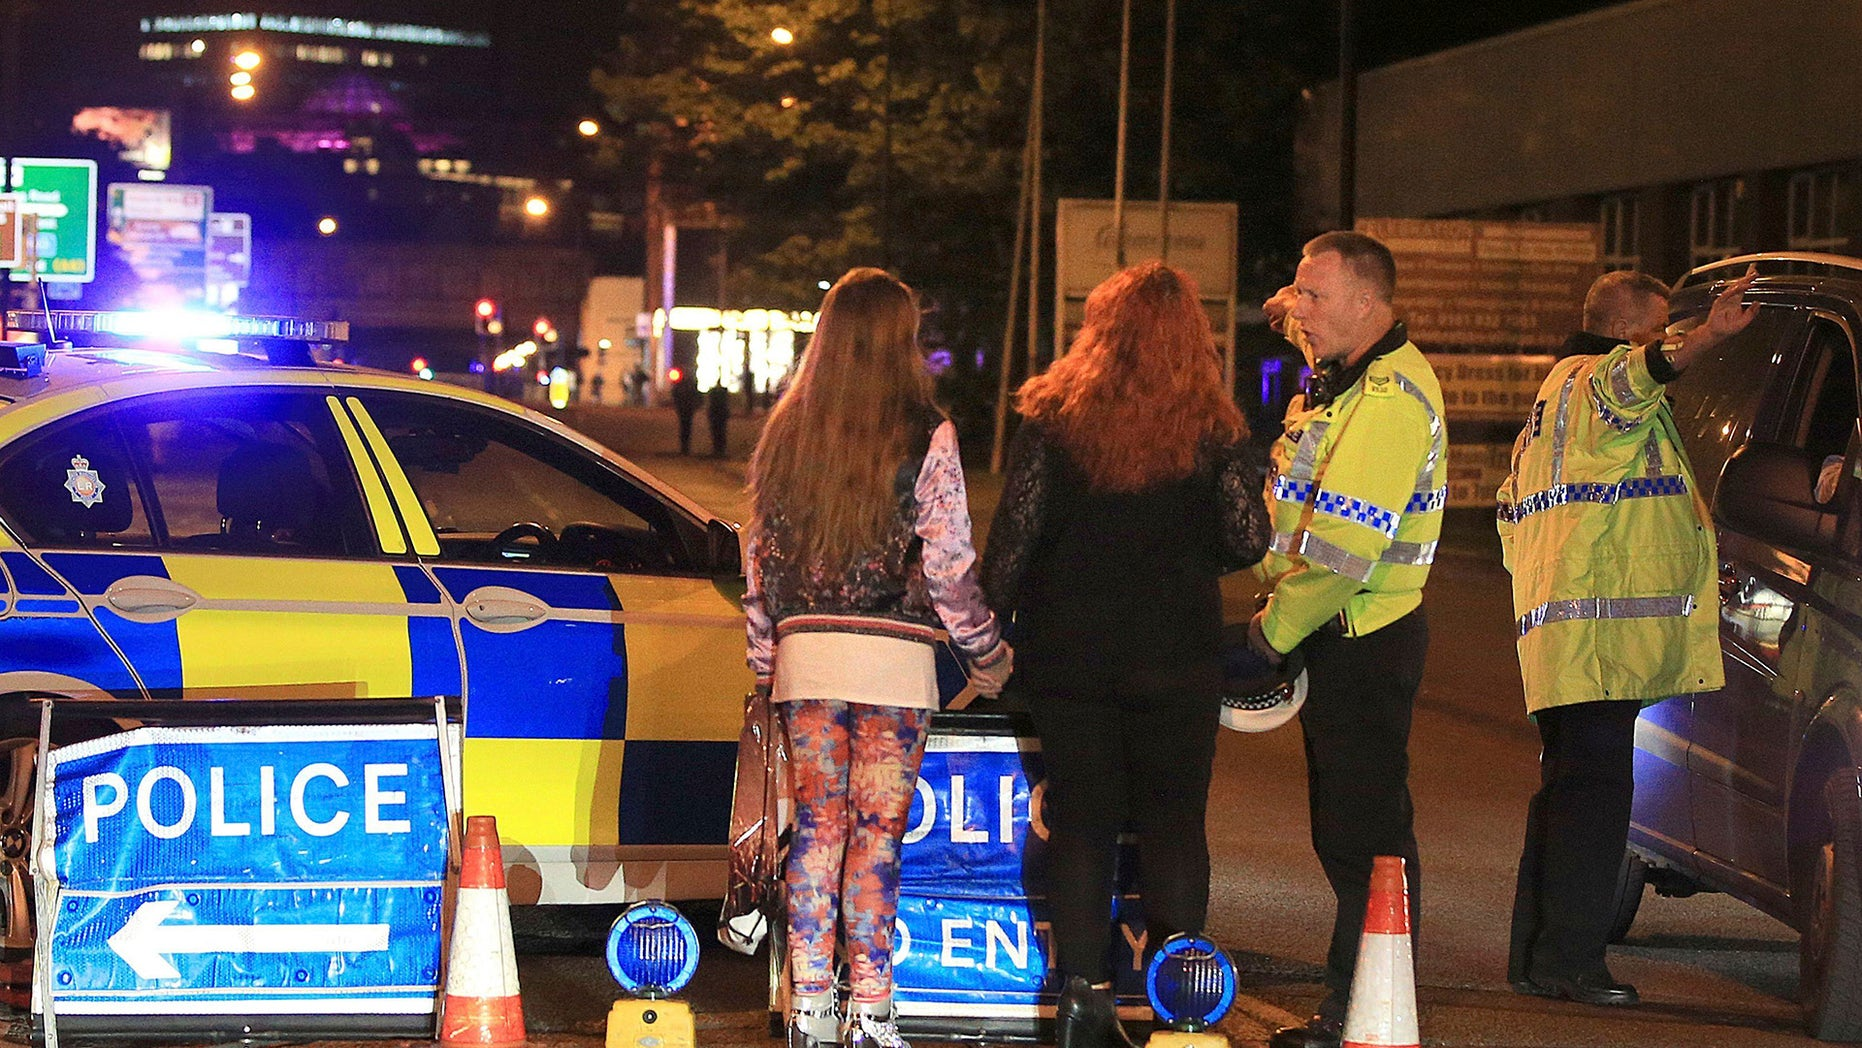 Police work at Manchester Arena after reports of an explosion at the venue during an Ariana Grande gig in Manchester, England Monday, May 22, 2017. Several people have died following reports of an explosion Monday night at an Ariana Grande concert in northern England, police said. A representative said the singer was not injured. (Peter Byrne/PA via AP)